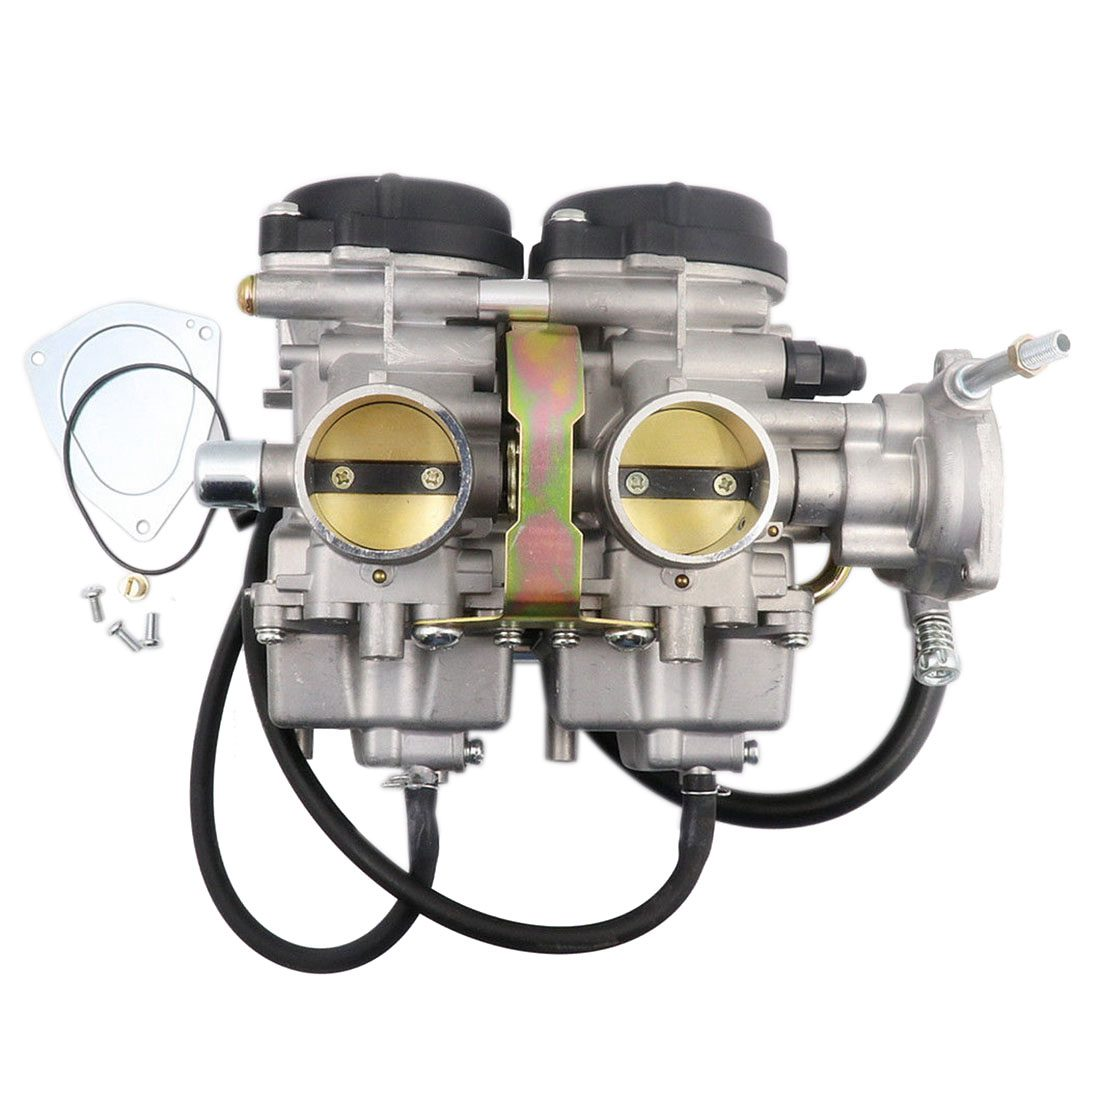 AUTO -New Carburetor for YAMAHA RAPTOR 660 YFM660 2001-2005 Carb